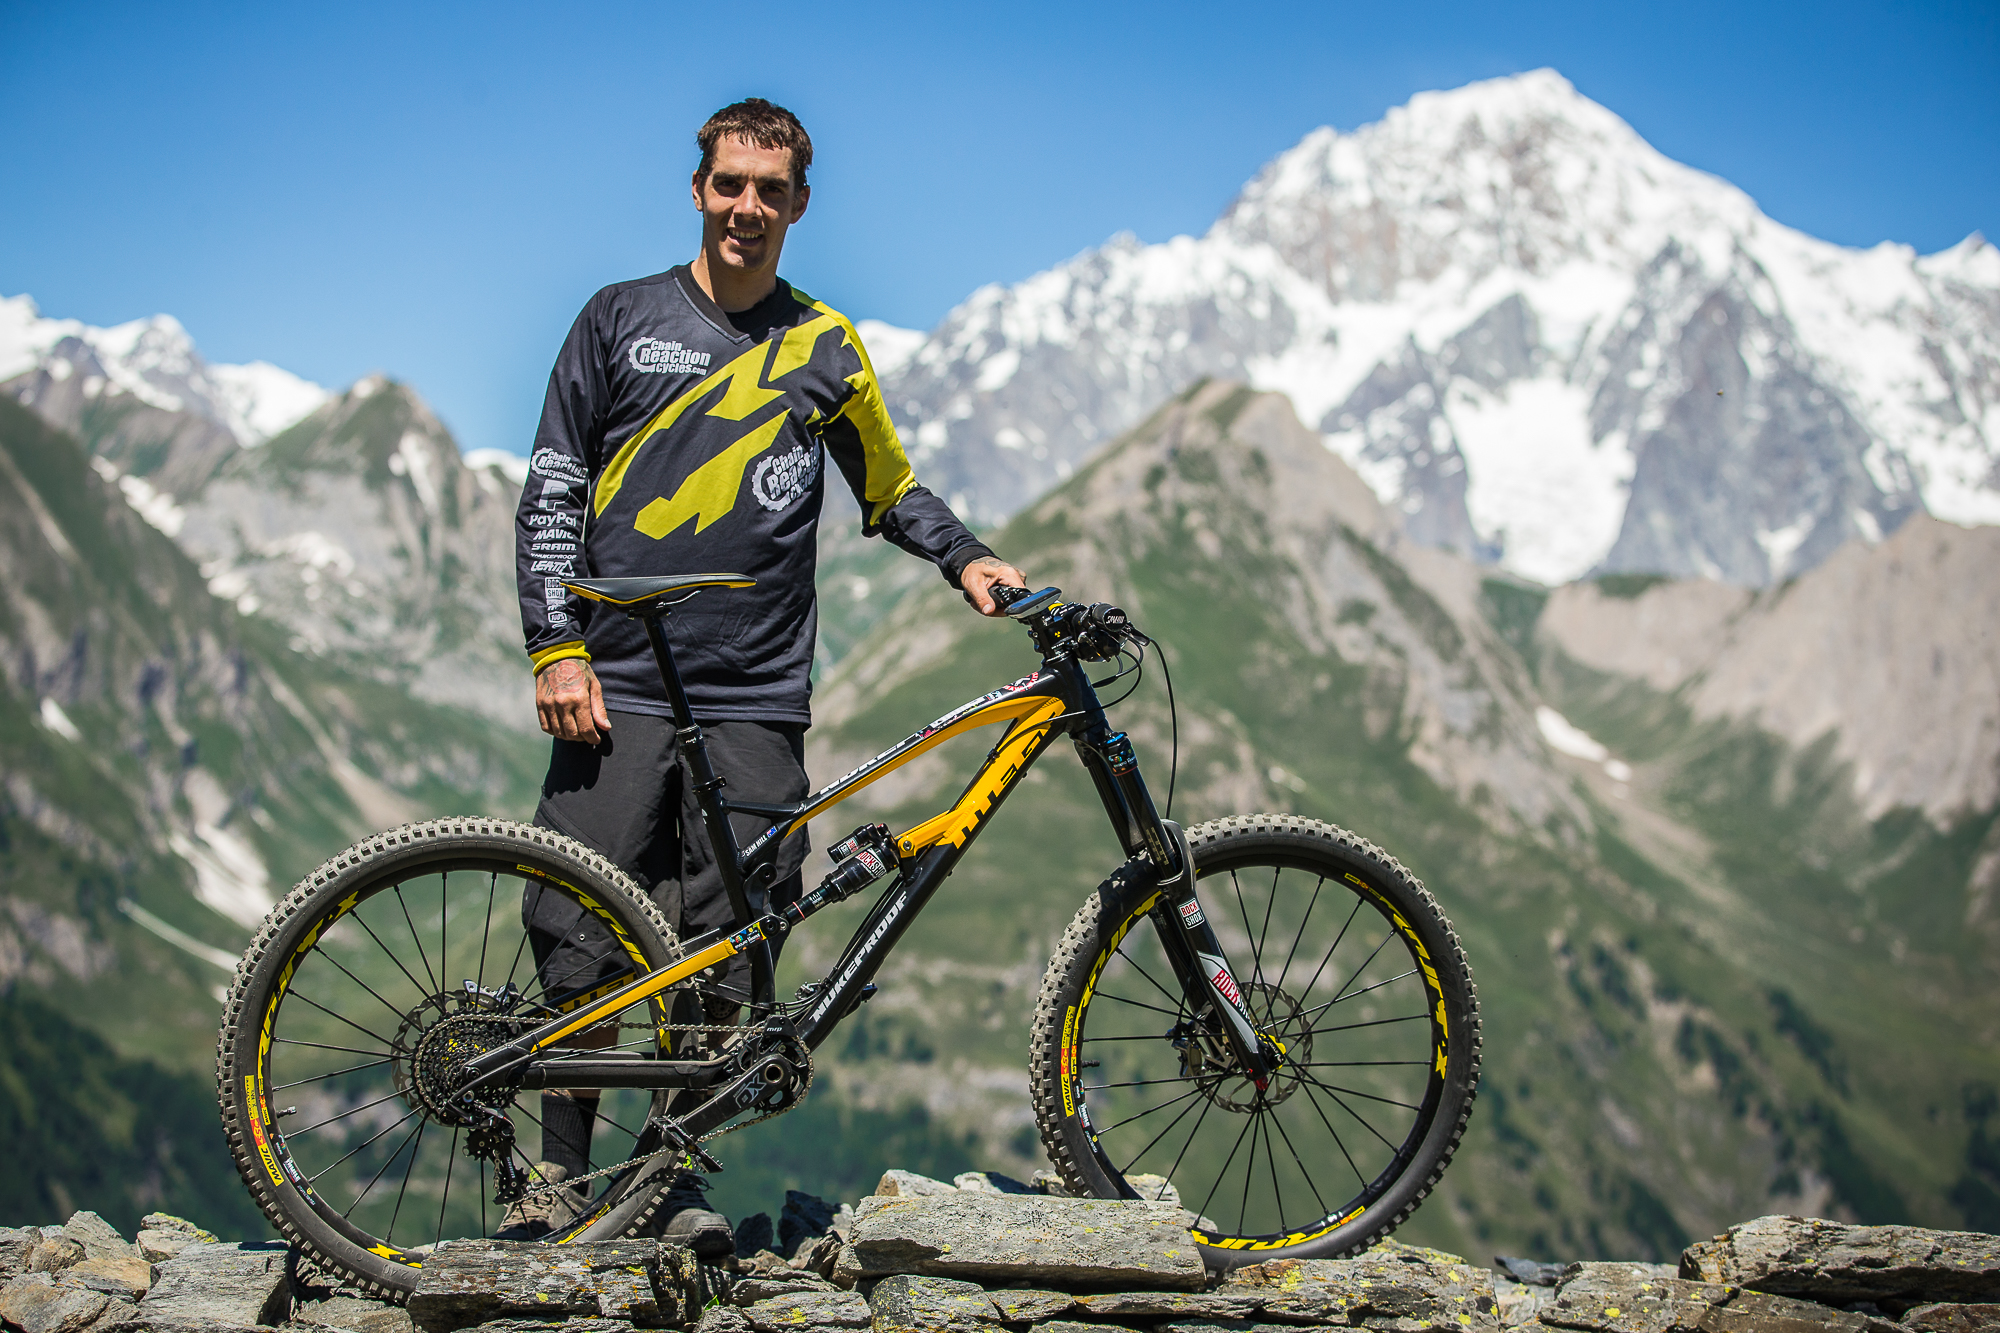 Drag Racing Helmets >> Sam Hill, Bitches - PIT BITS - Enduro World Series, La Thuile, Italy - Mountain Biking Pictures ...